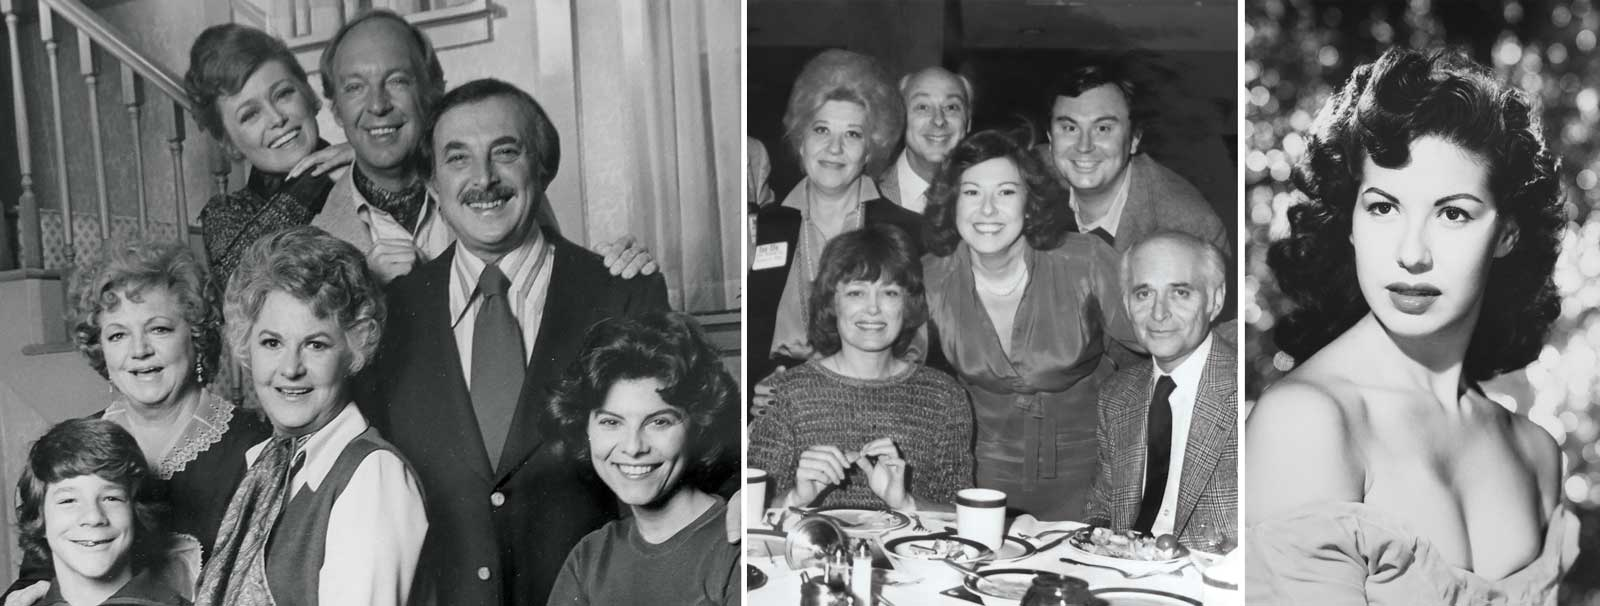 The cast of Maude including Bea Arthur, Bill Macy, Conrad Bain; Cast including Rue McClanahan with Fern Field and Norman Lear; Fern Field